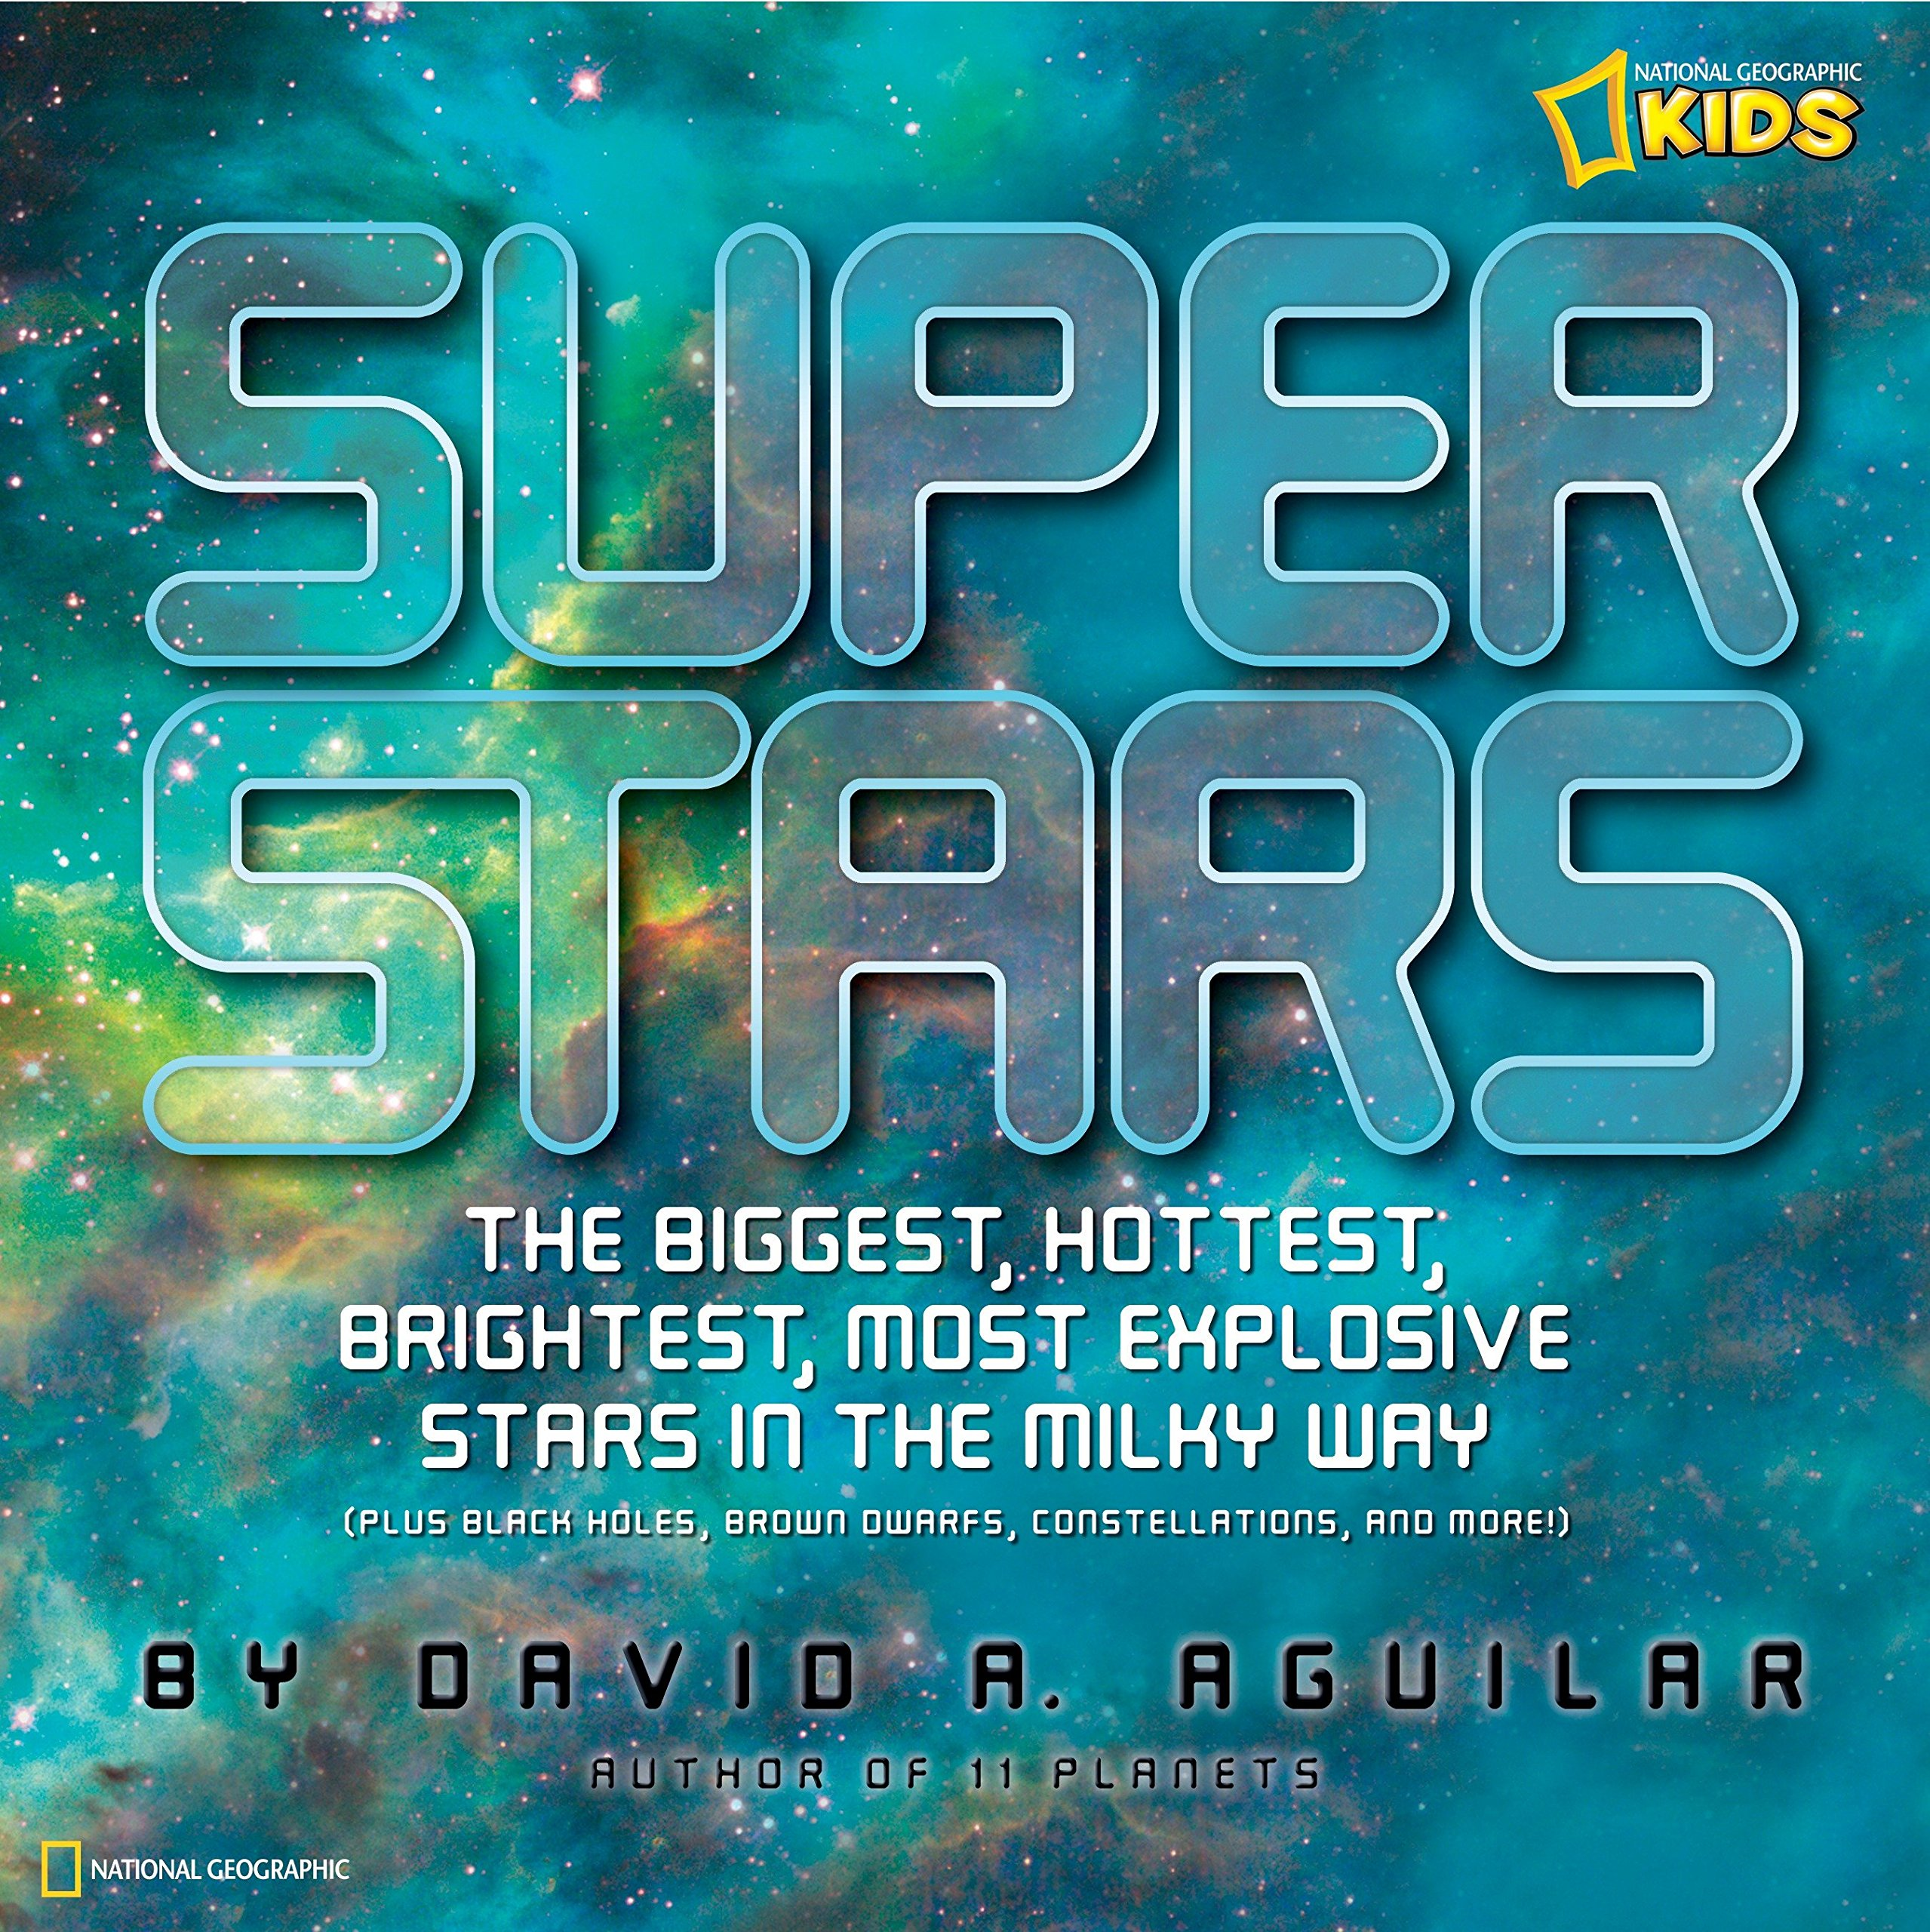 Download Super Stars: The Biggest, Hottest, Brightest, and Most Explosive Stars in the Milky Way ebook